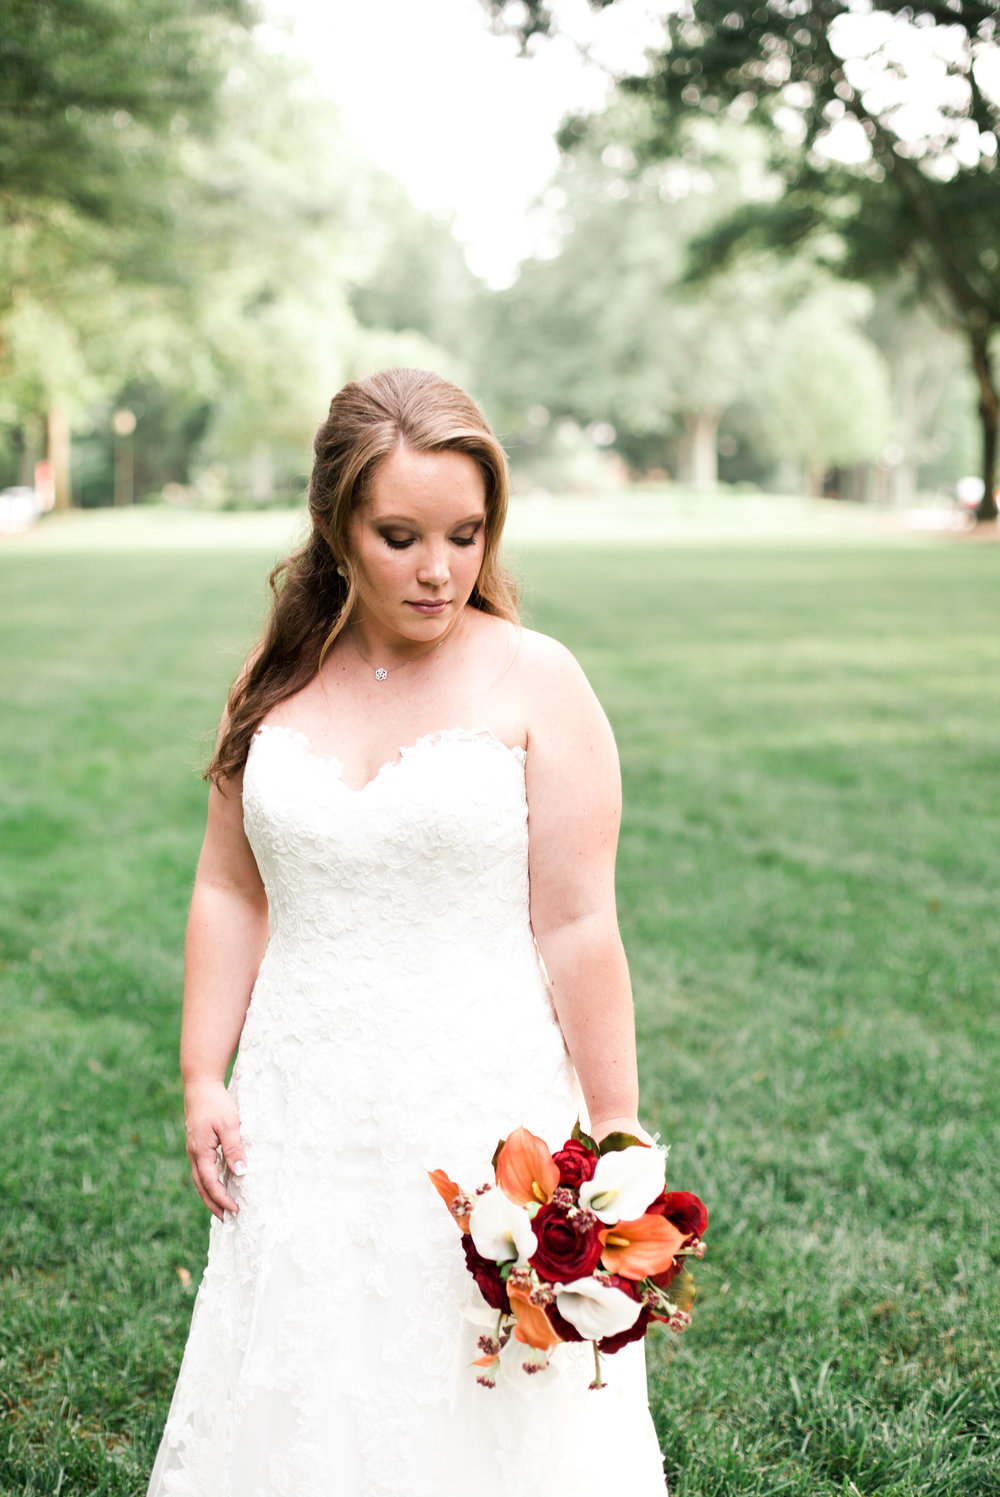 gabbie_bridal_poured_out_photography-50.jpg